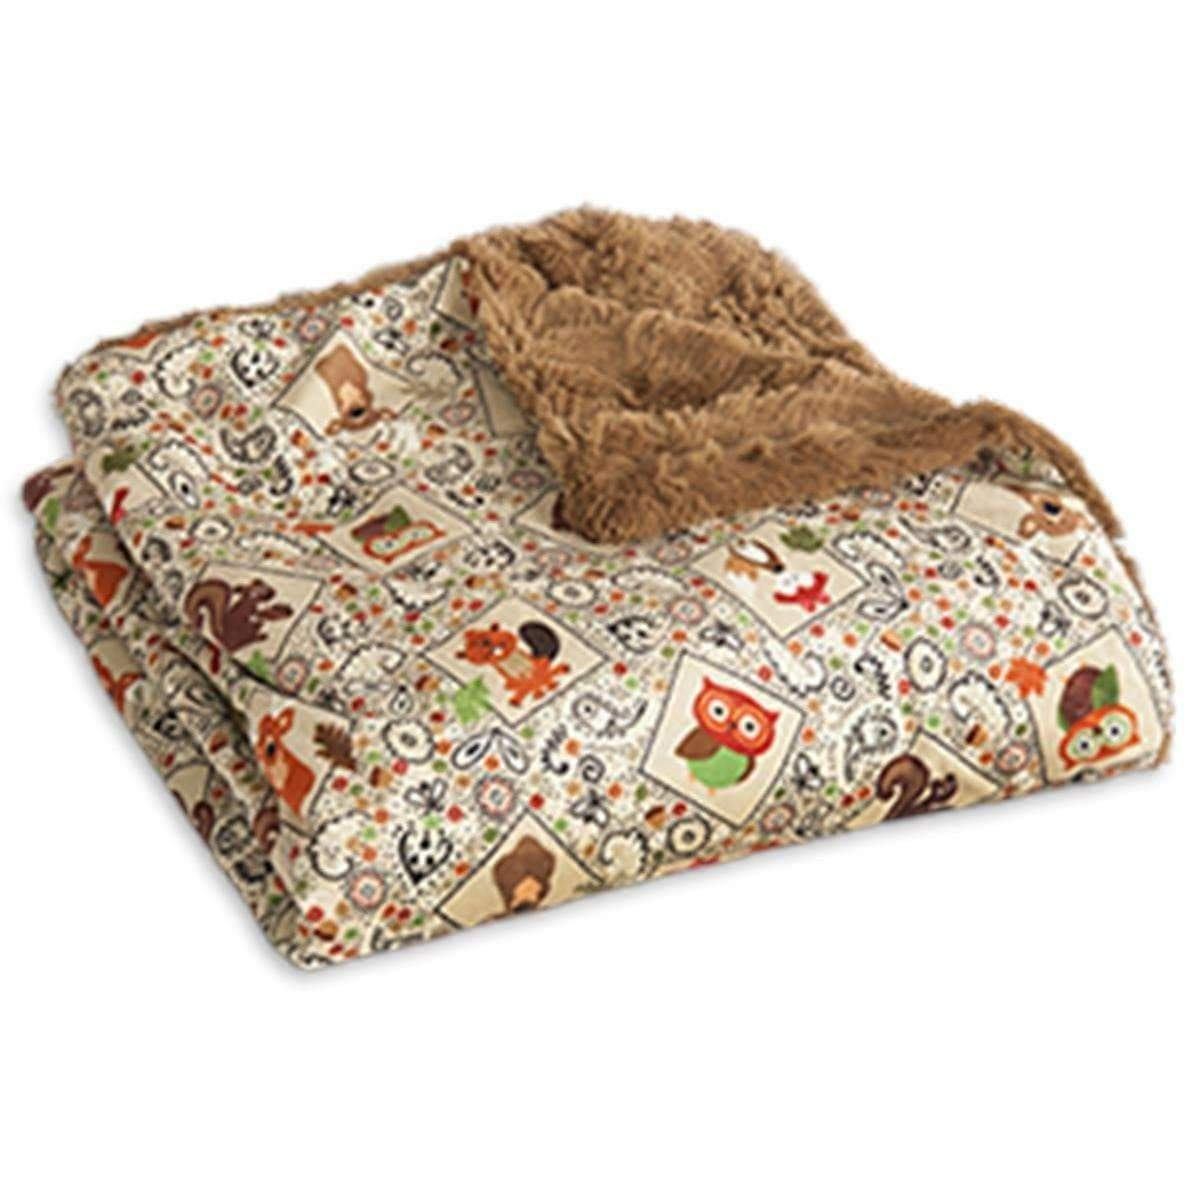 Camping Throw - Cozy Critters Tan